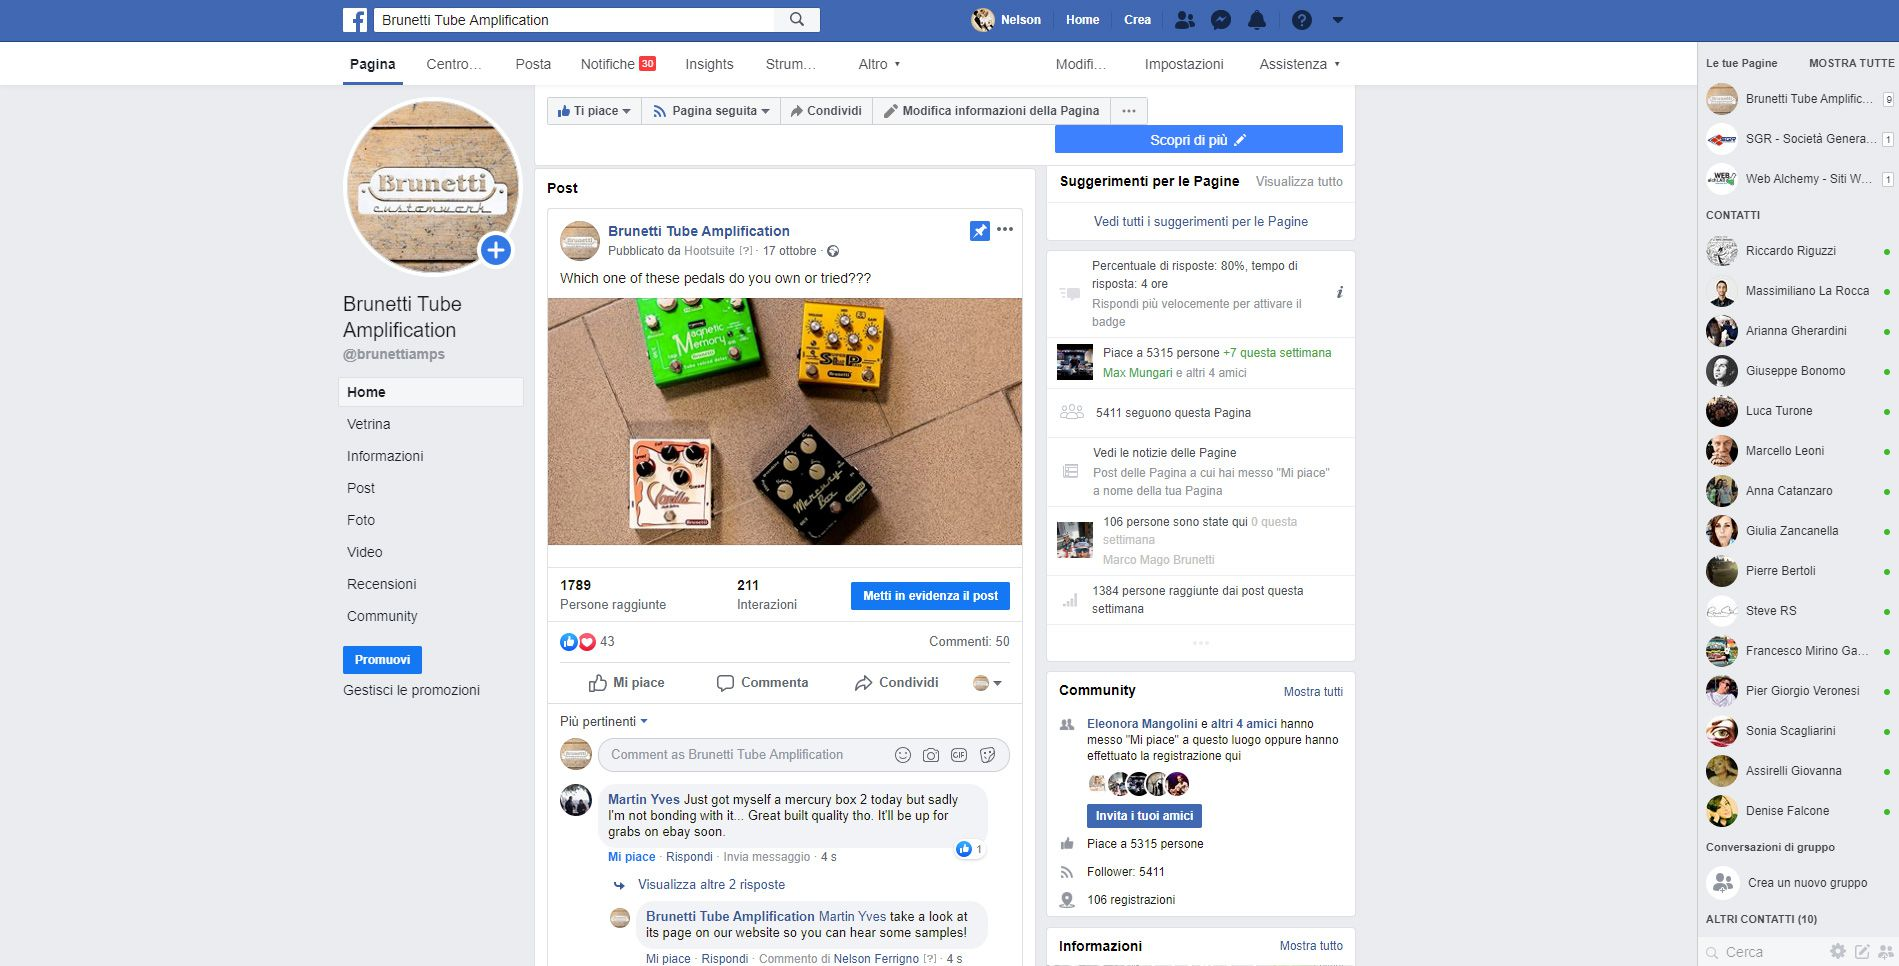 La pagina Facebook di Brunetti Tube Amplification.